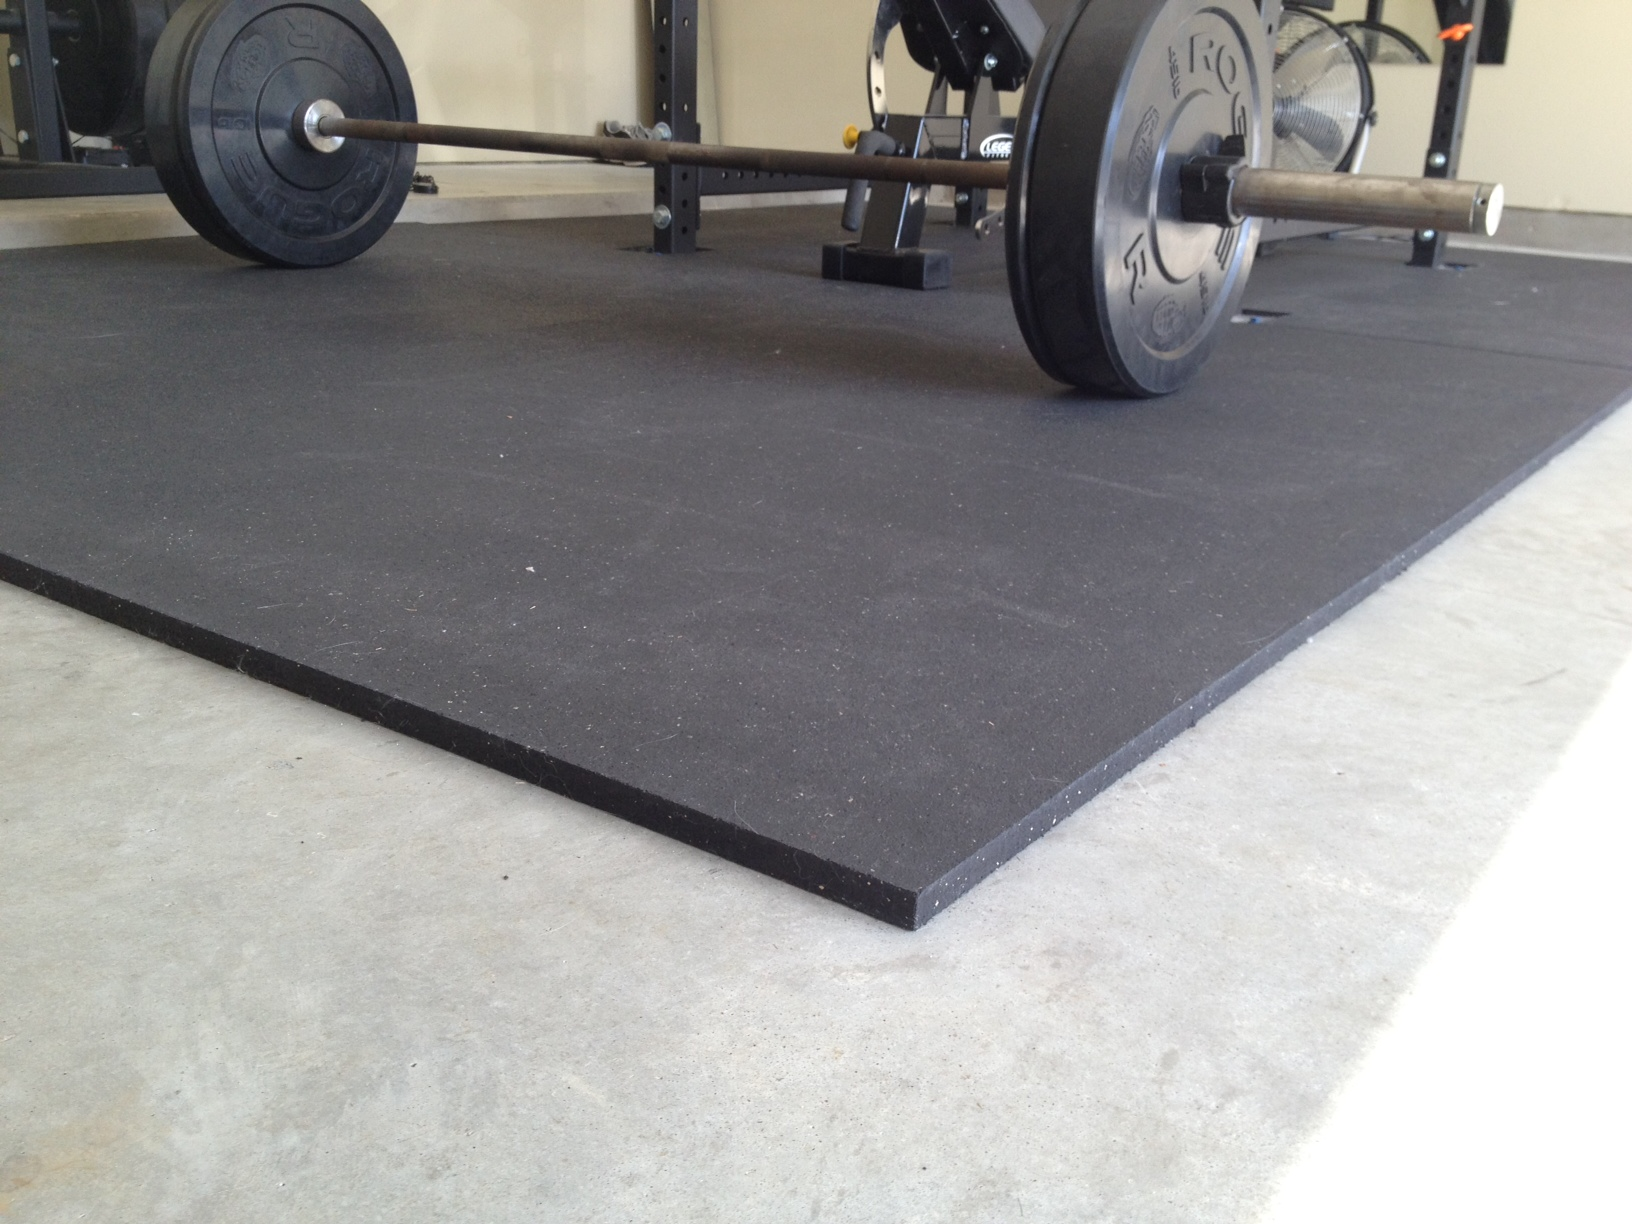 Garage Gym Reviews Diy Platform Garage Gym Flooring Protect Your Equipment And Foundation